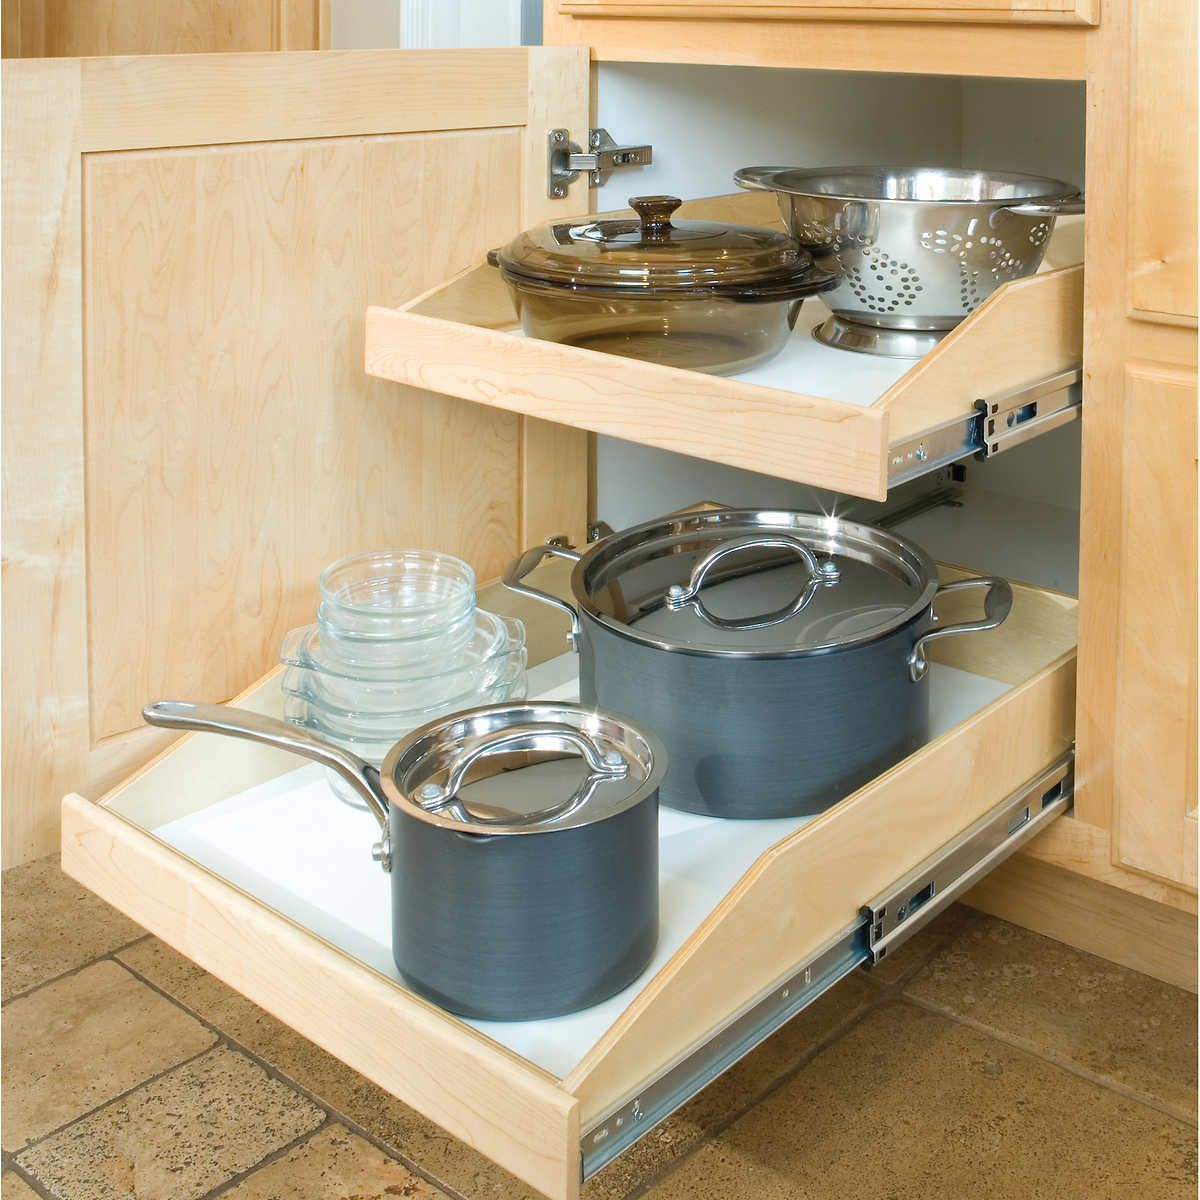 Best Kitchen Gallery: S Costco Made To Fit Slide Out Shelves For Existing of Pull Out Shelves For Kitchen Cabinets on cal-ite.com